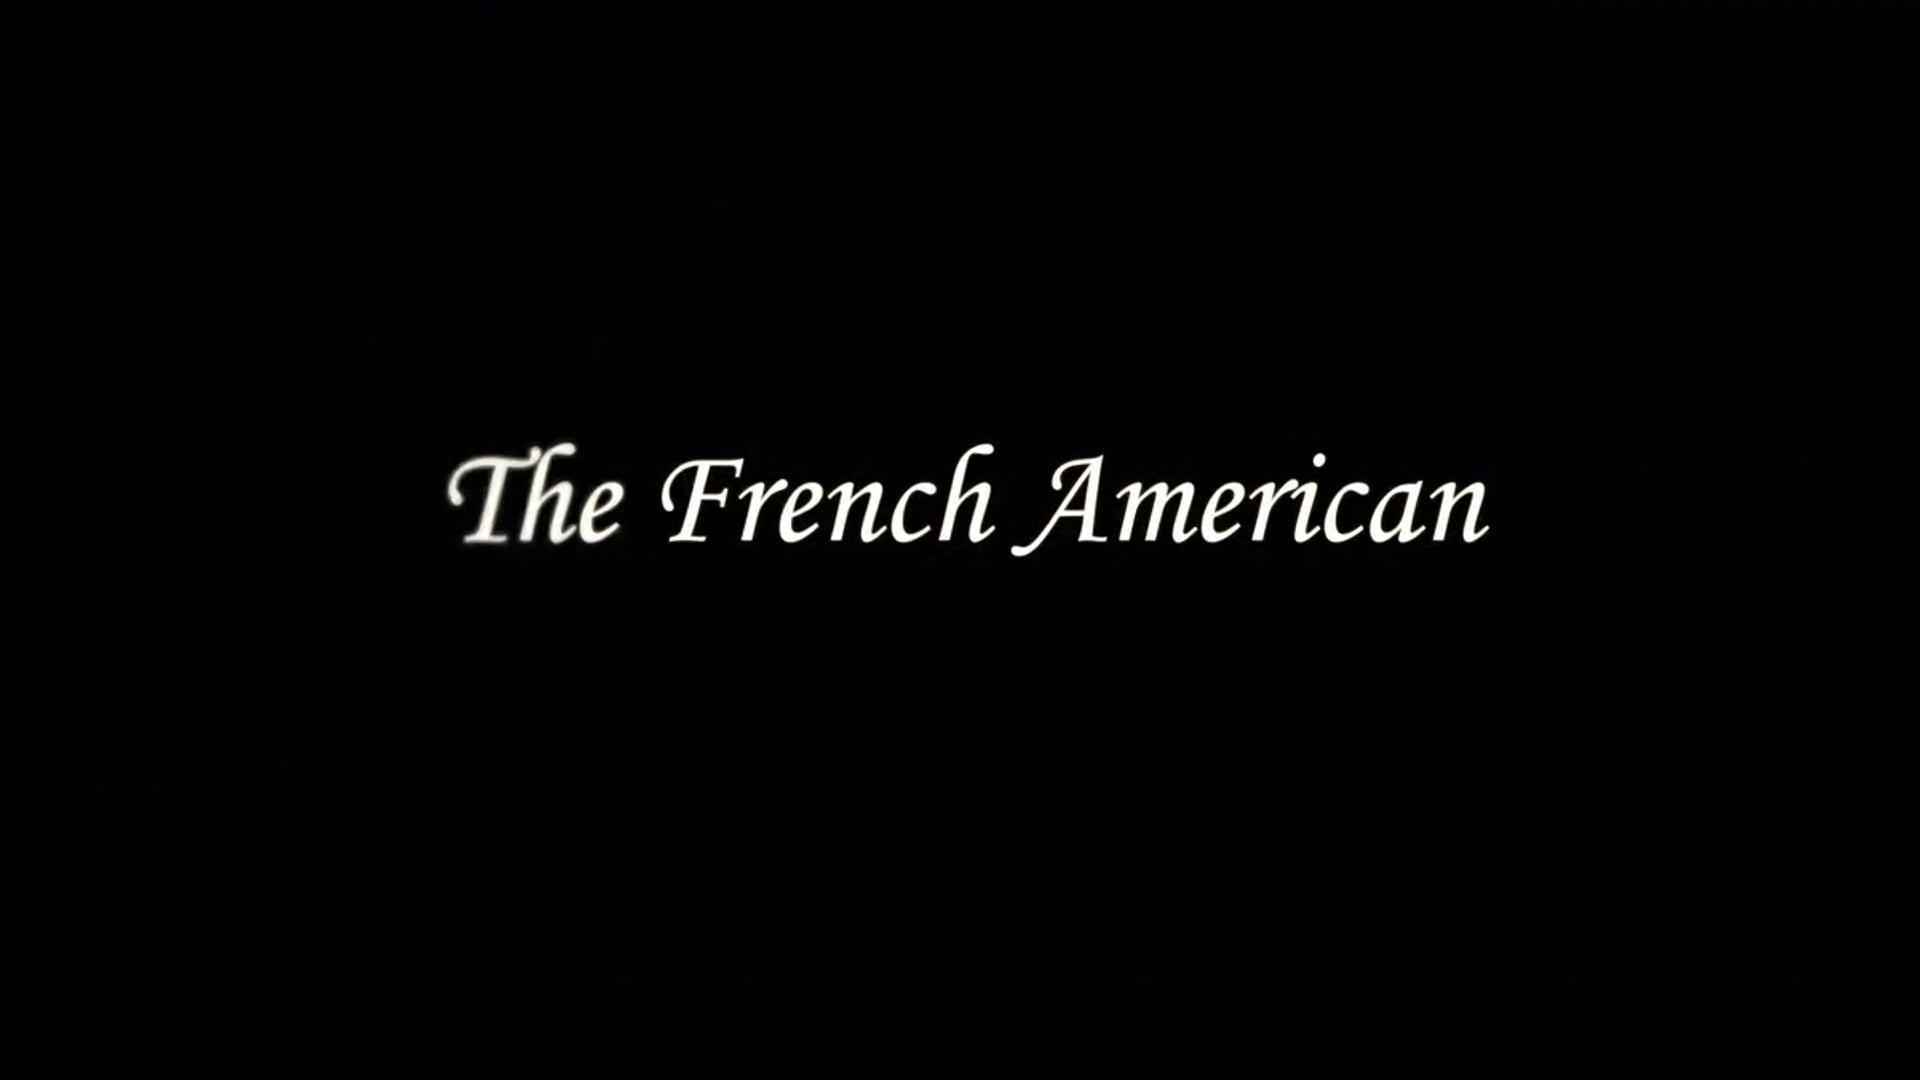 French American Teaser-HD